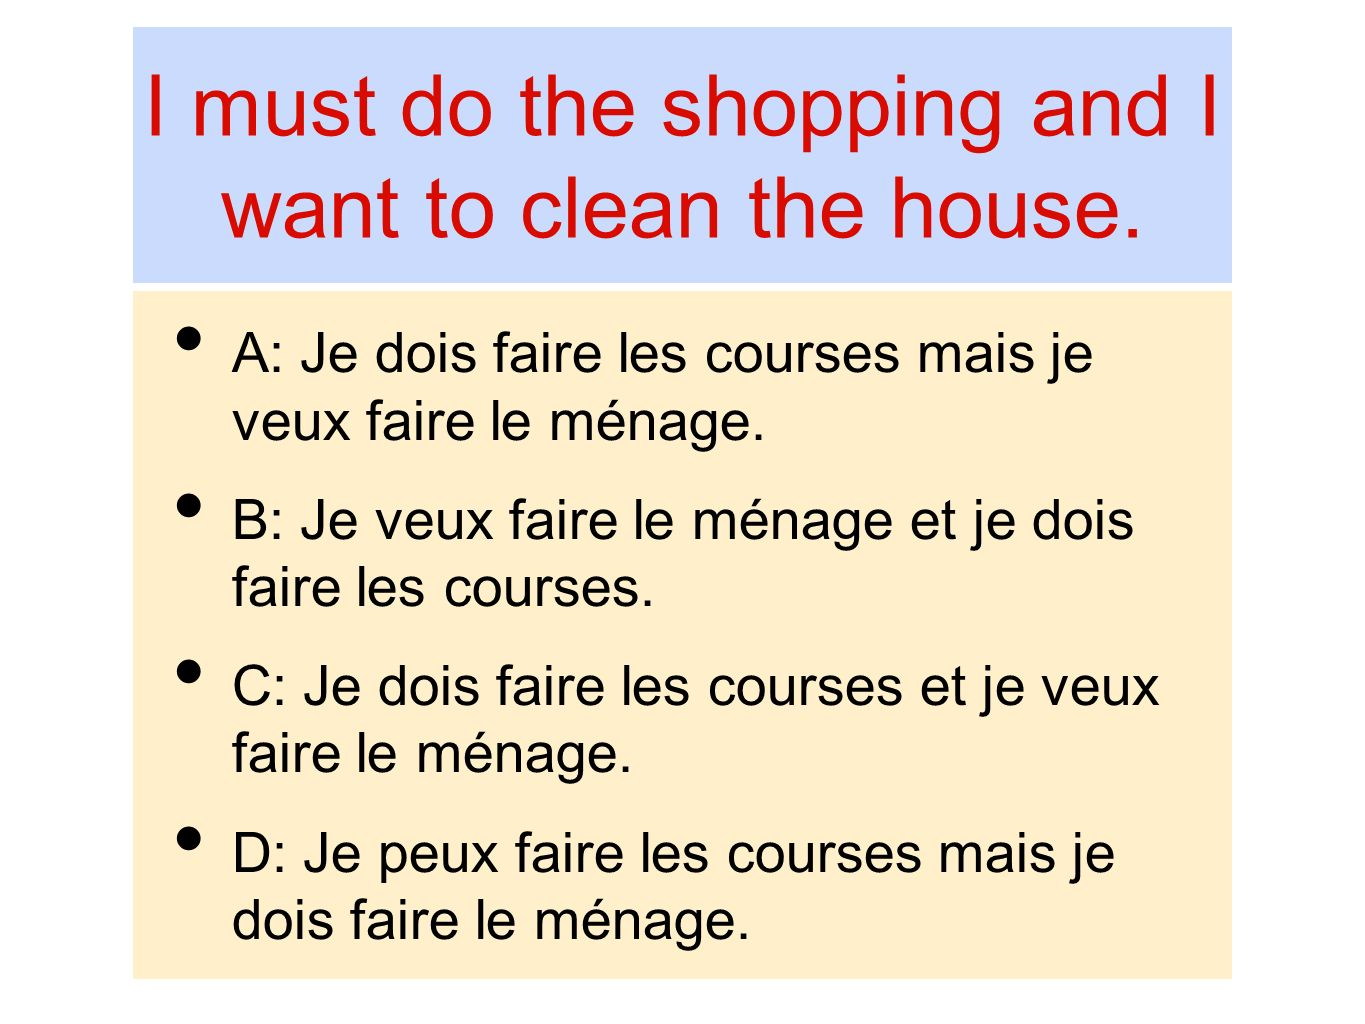 I must do the shopping and I want to clean the house.